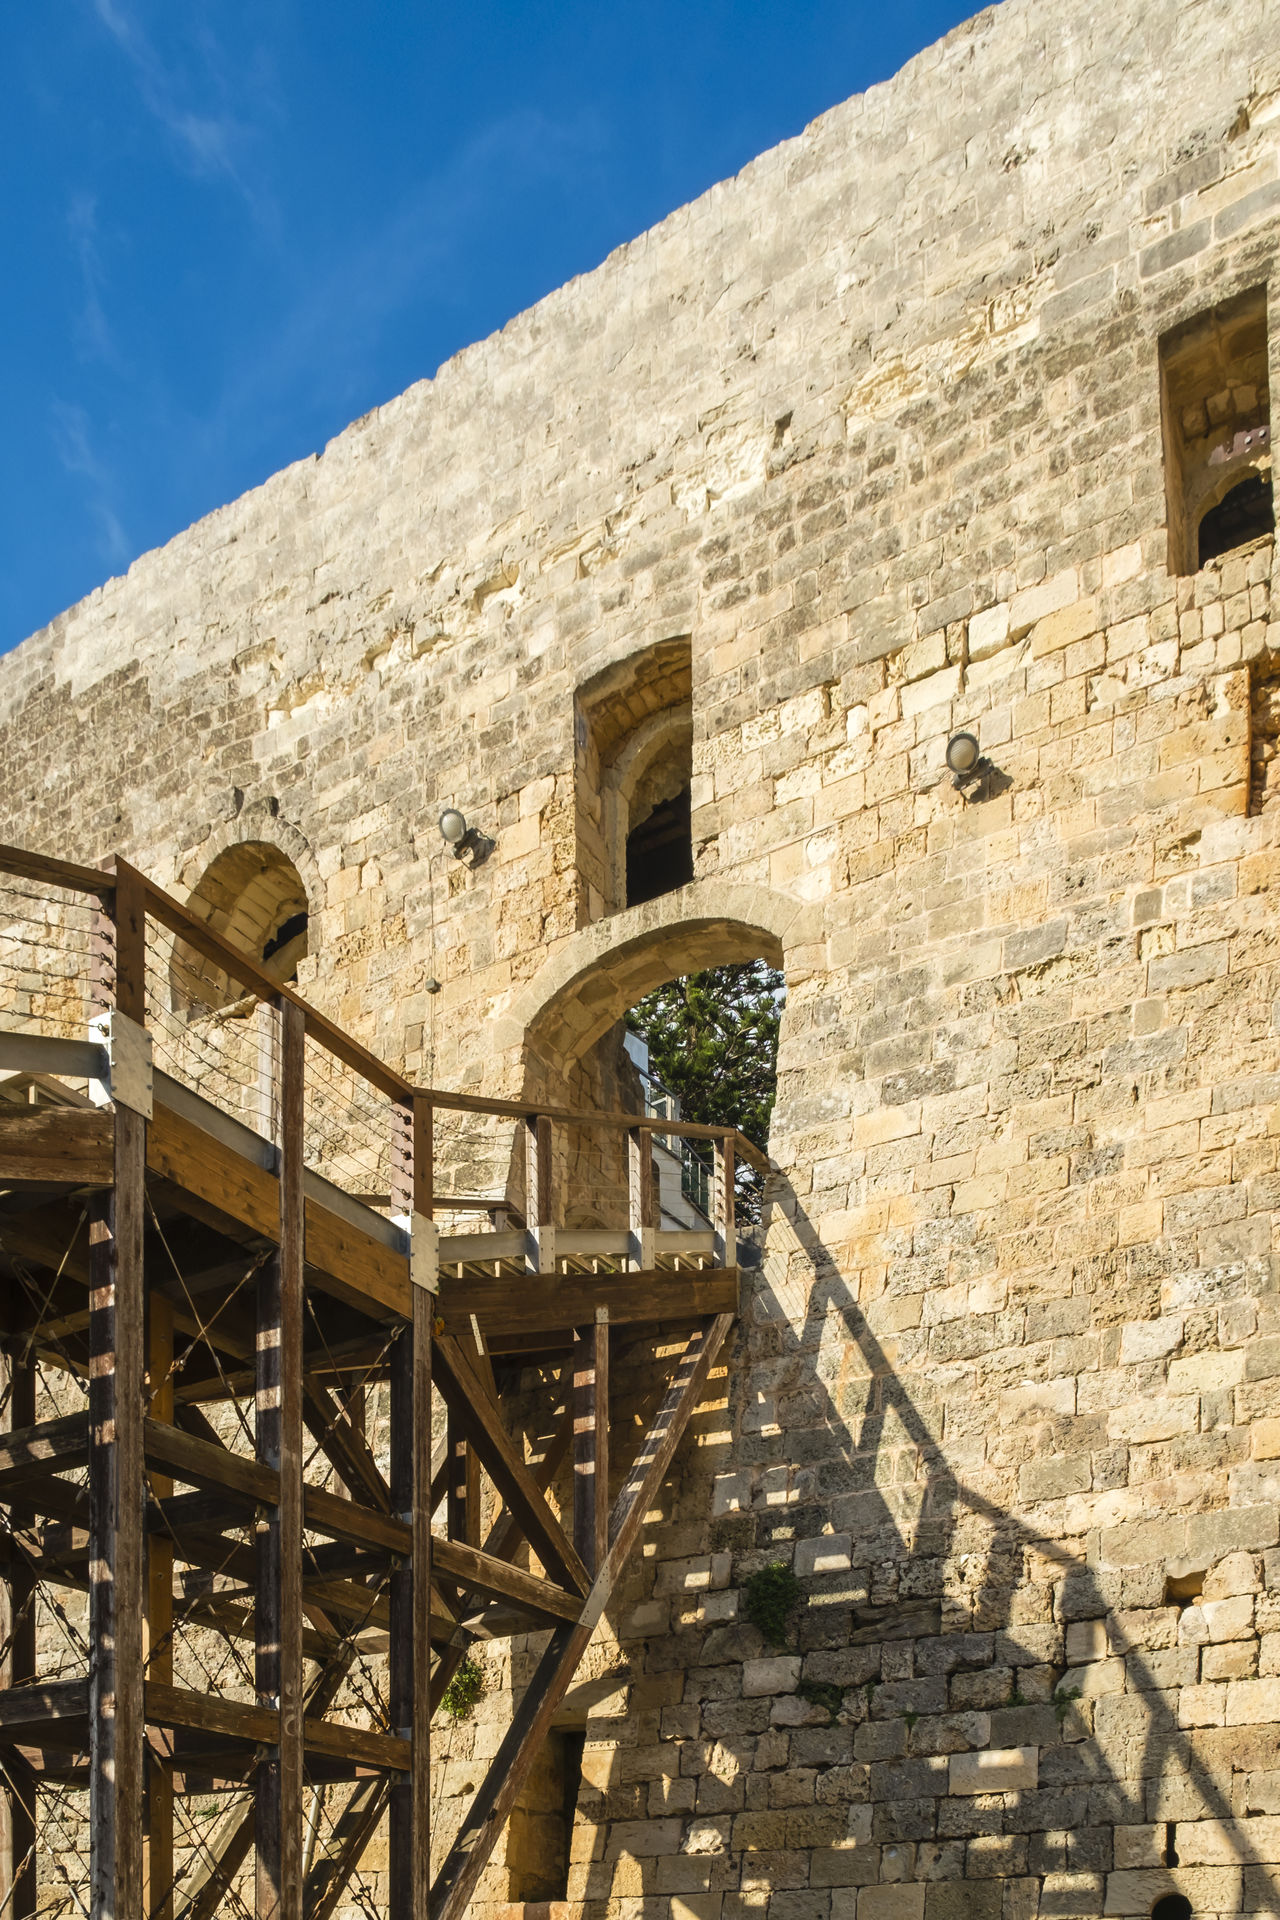 Ancient Architecture Architecture Building Exterior Built Structure Castle Day Entrance Historic Historical Building No People Outdoors Railing Sky Spiral Spiral Staircase Staircase Steps And Staircases Travel Destinations Wooden Wooden Bridge